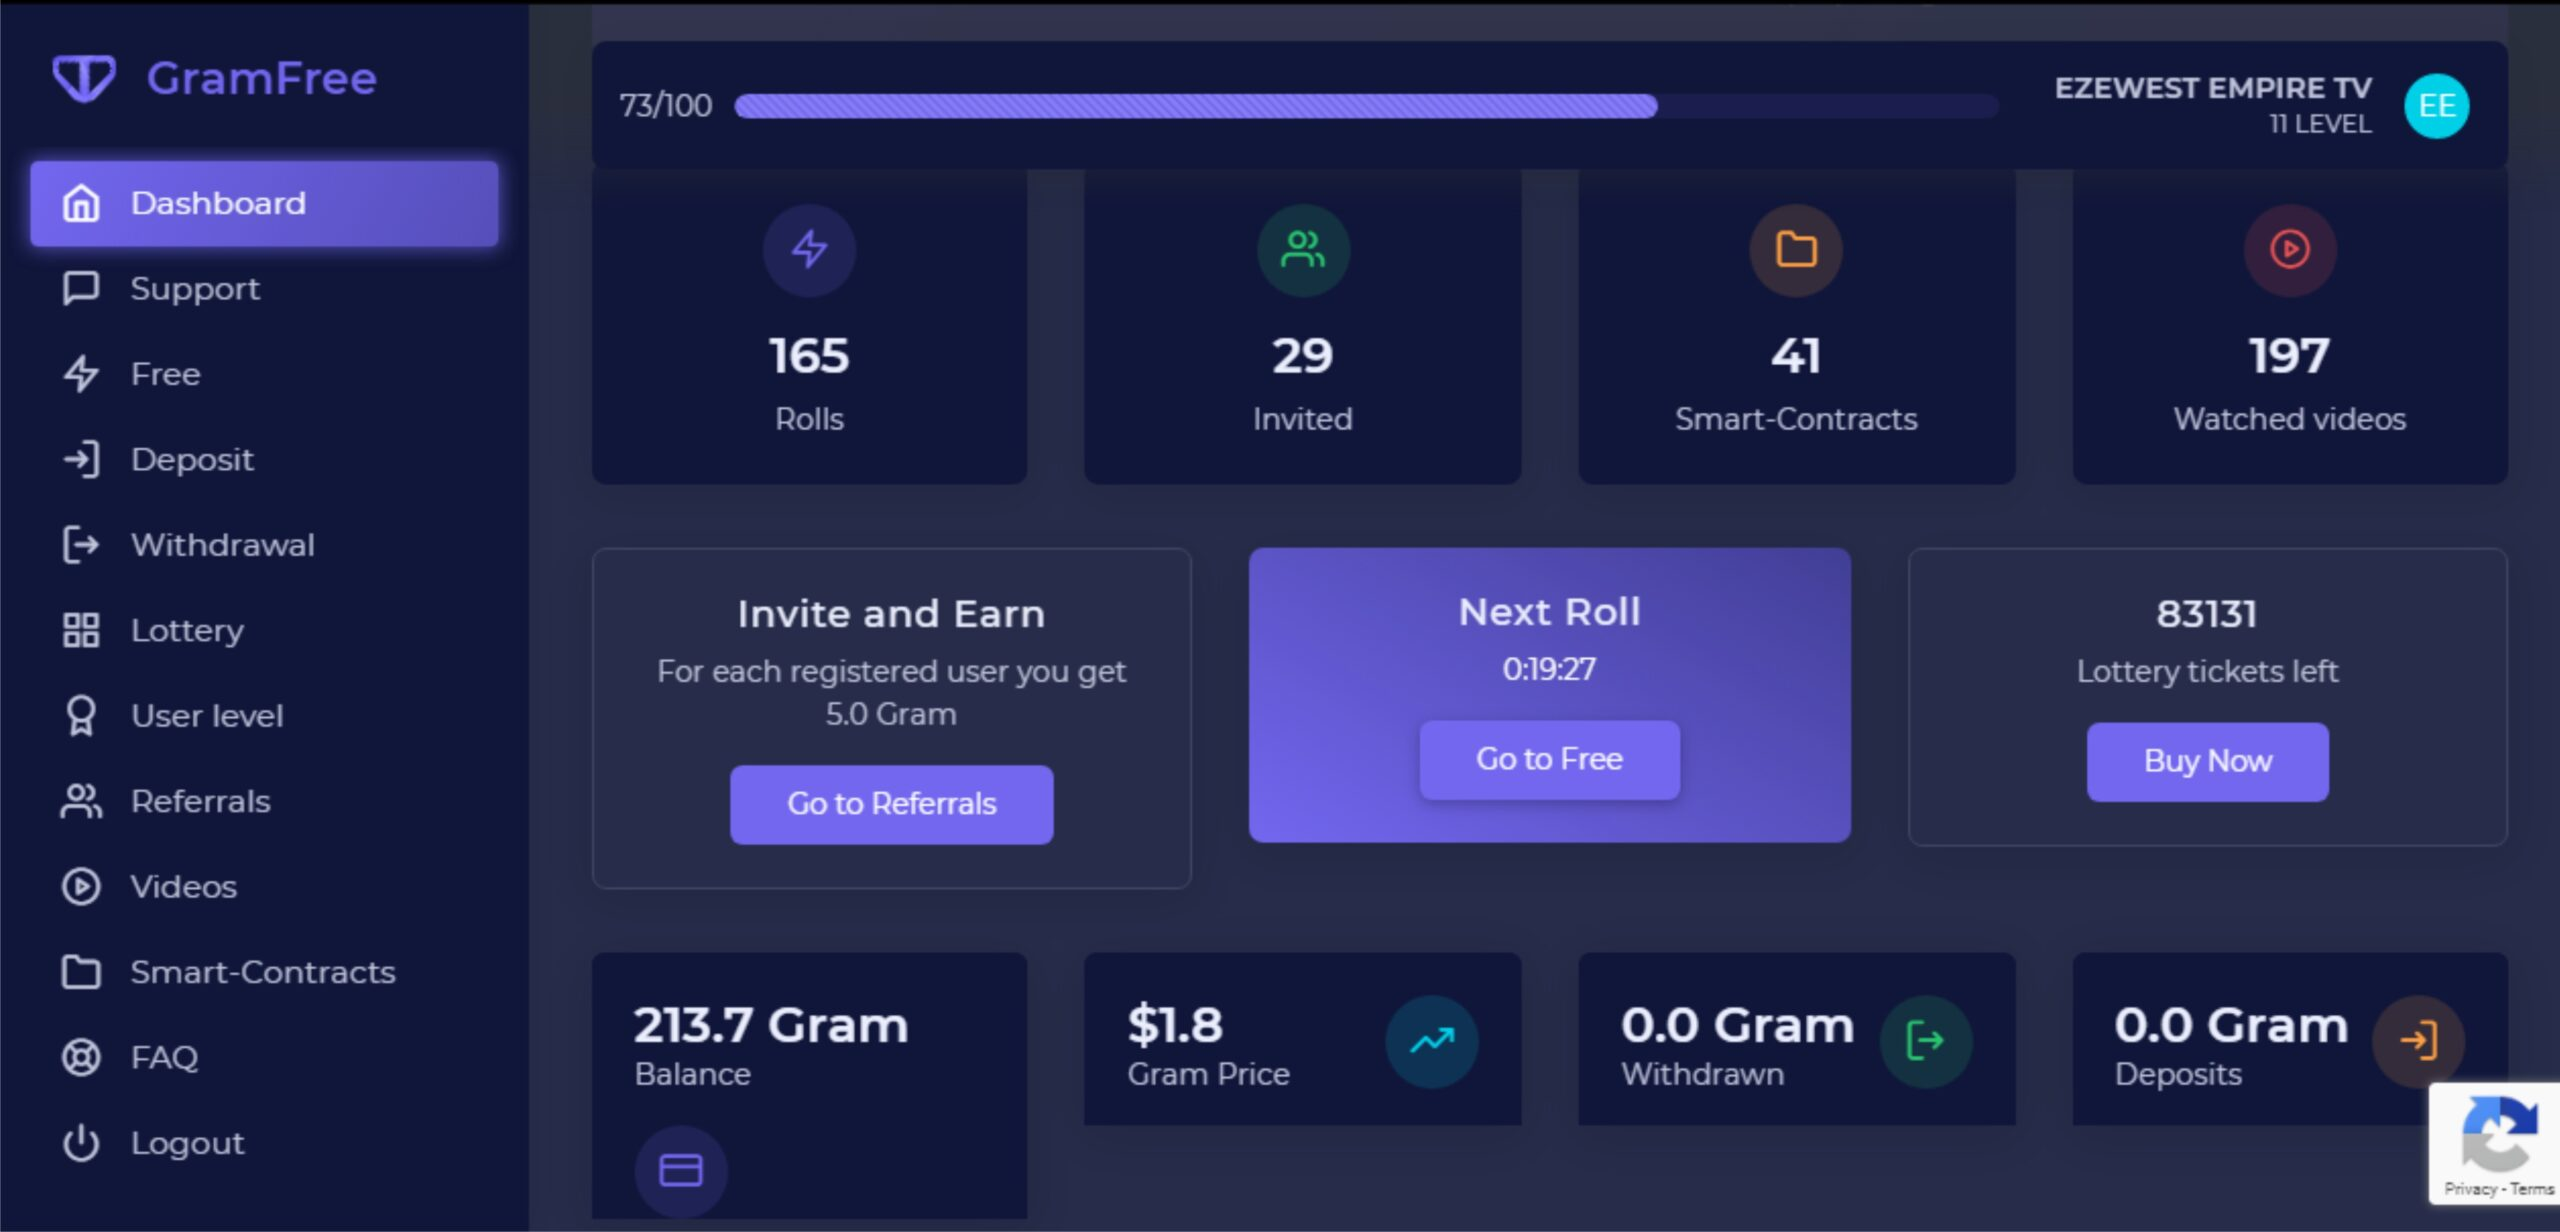 Stay Safe, Stay Home and Make $1,000 – Gramfree is Legit not Scam.